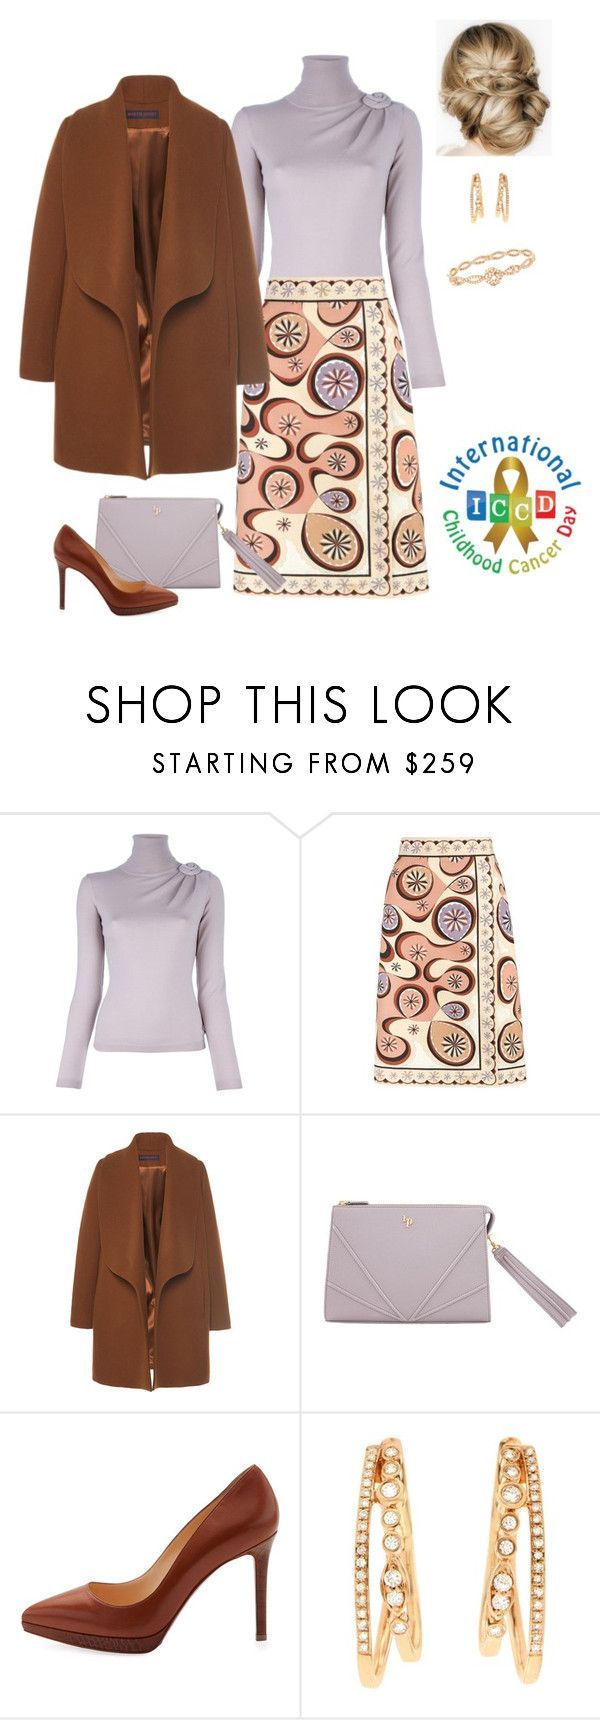 """""""Queen Rose attended the presentation of the song """"We are one"""" for the fight against cancer in children"""" by hm-queen-rose ❤ liked on Polyvore featuring Valentino, Emilio Pucci, Martin Grant, Christian Louboutin, Effy Jewelry and Piaget"""